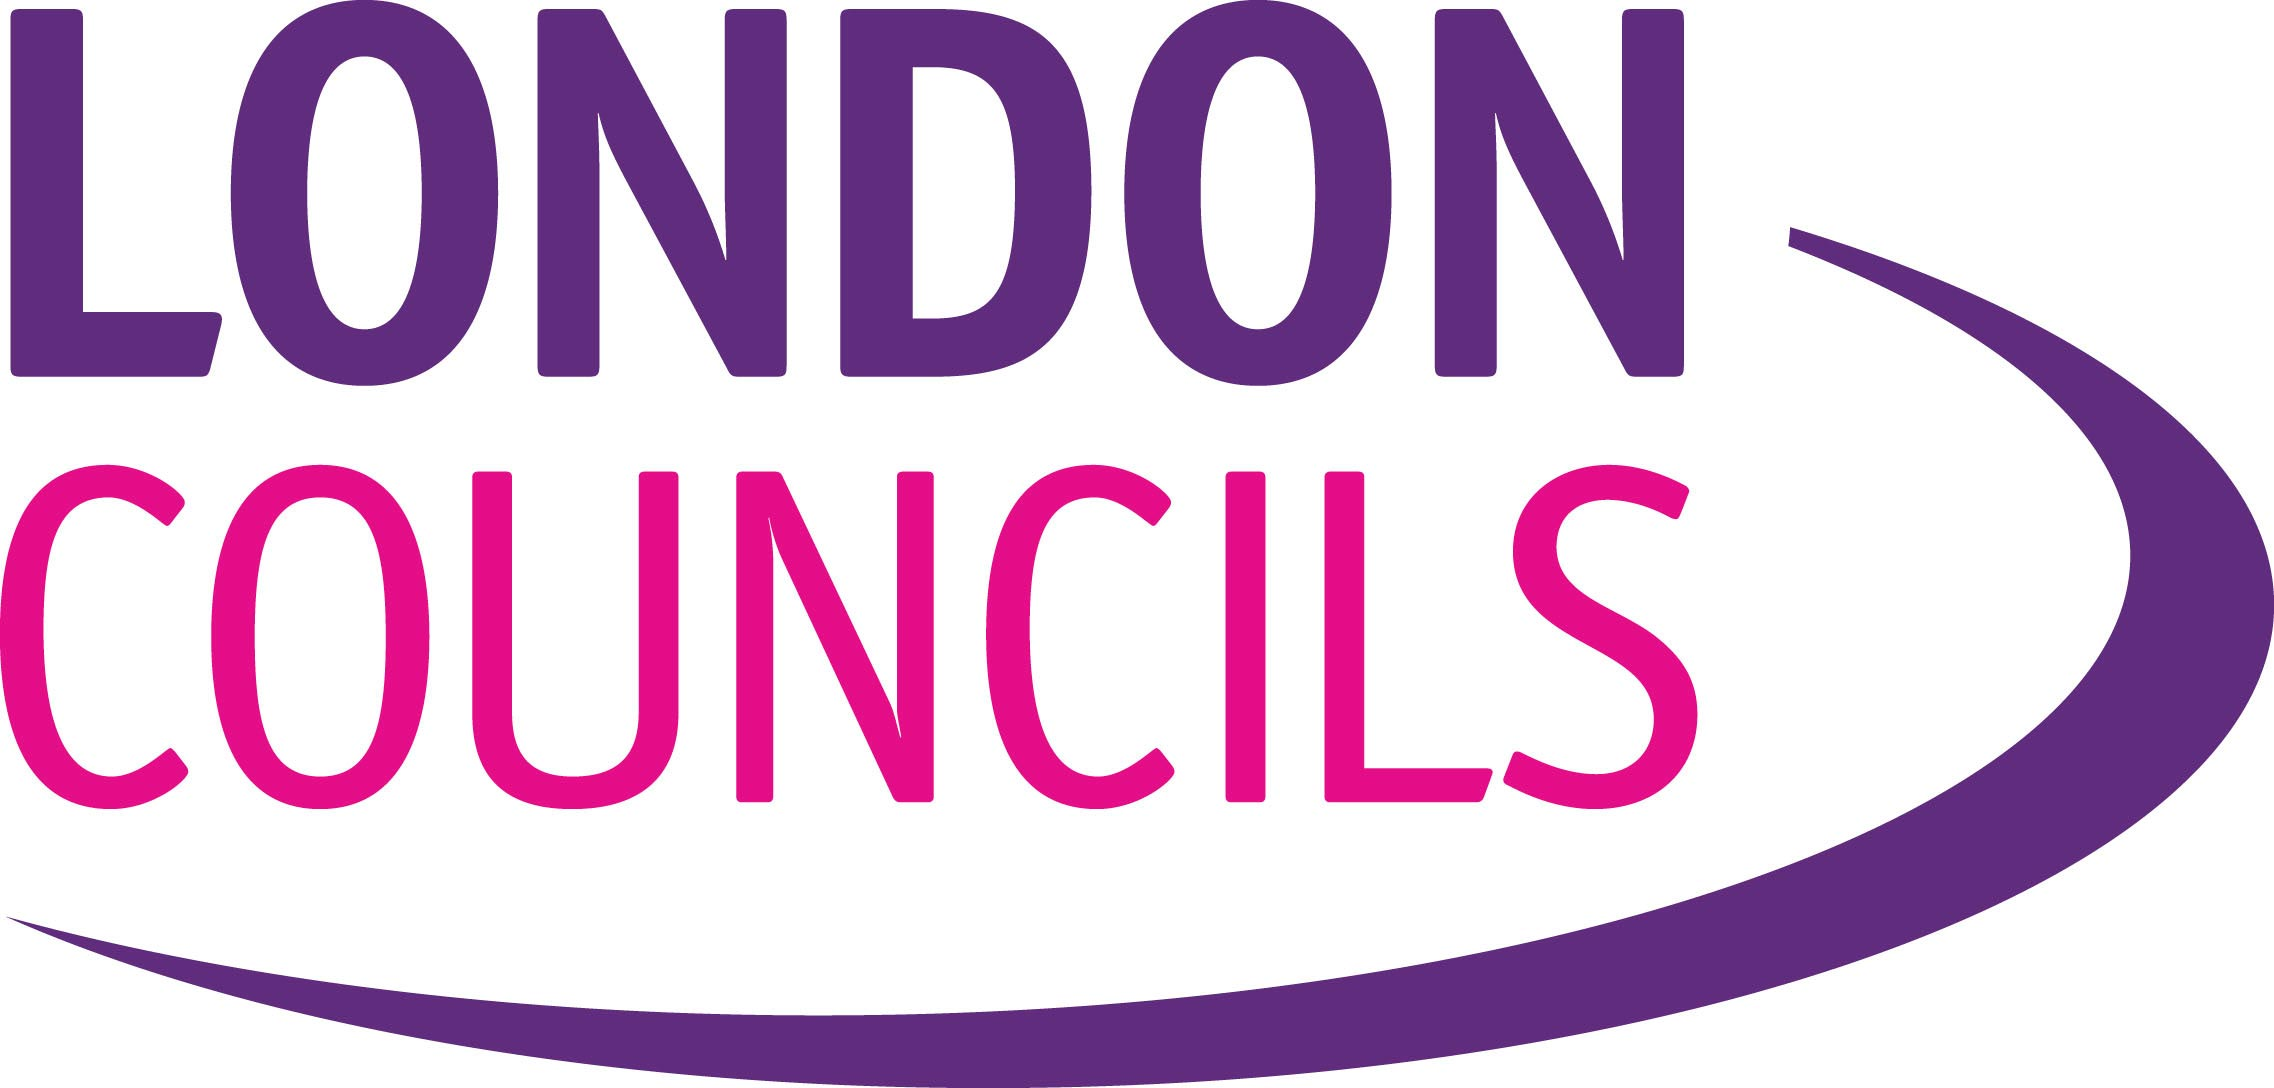 London-Councils-logo